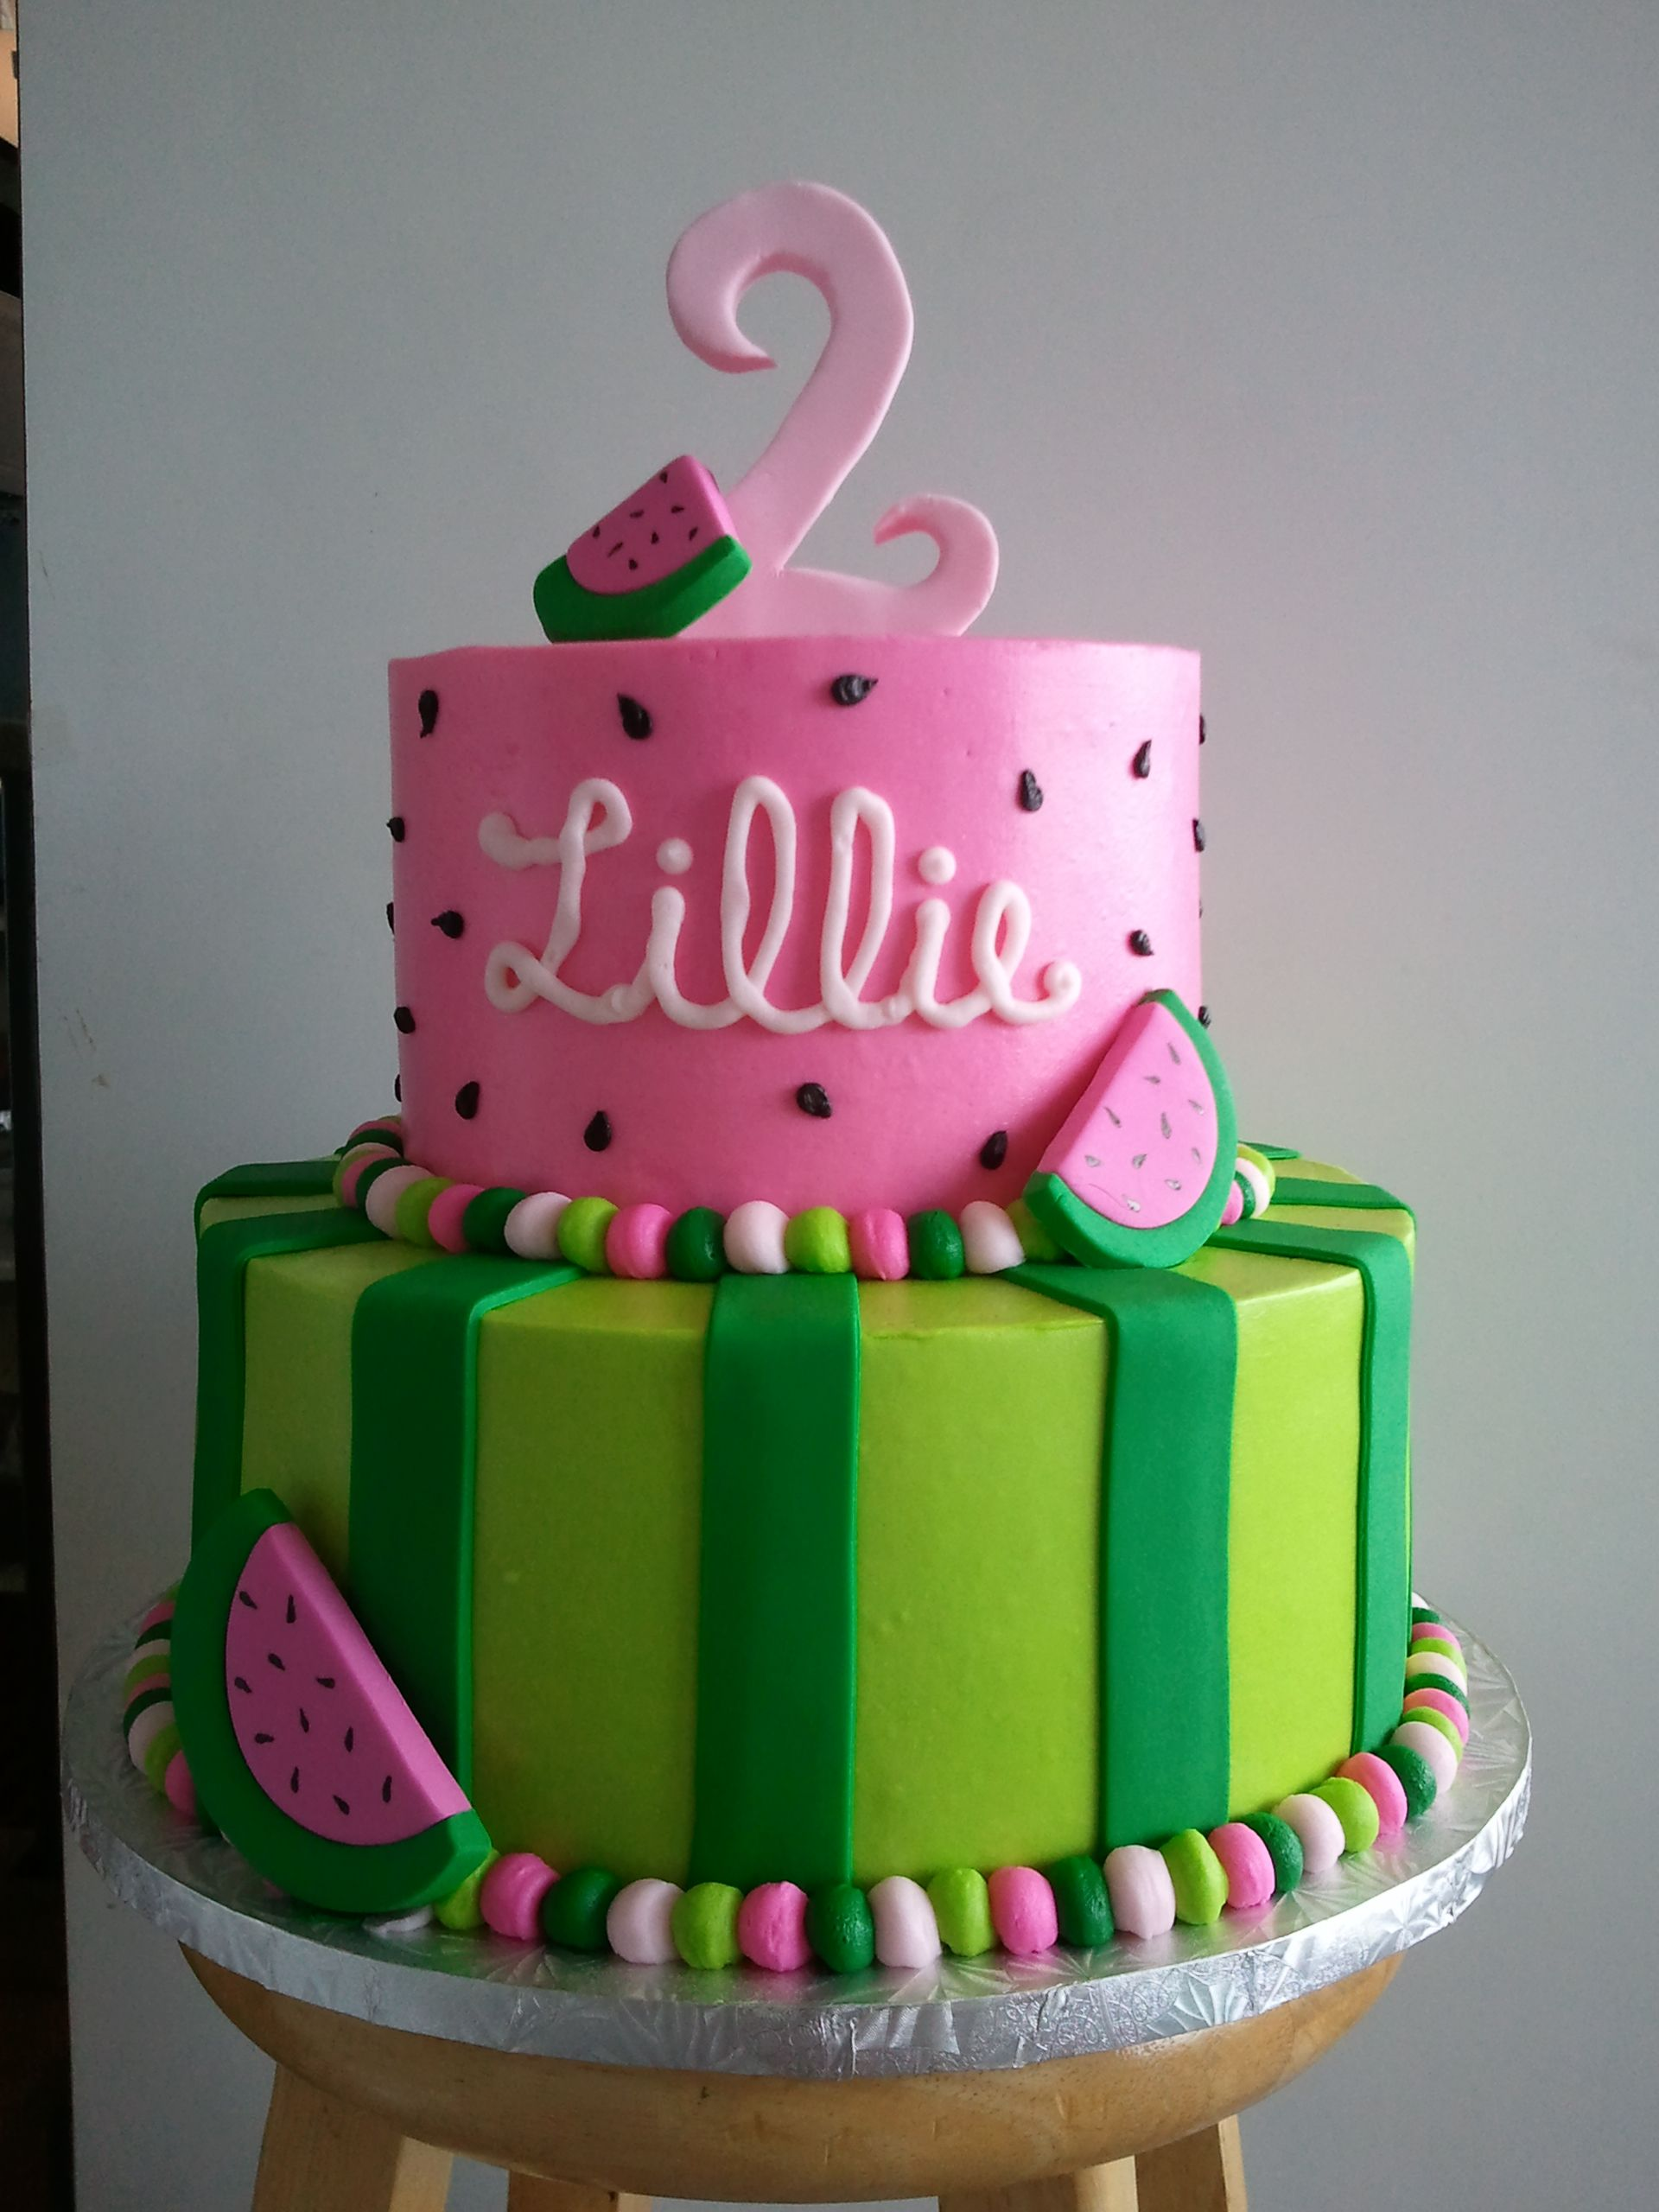 Watermelon Birthday Cake.